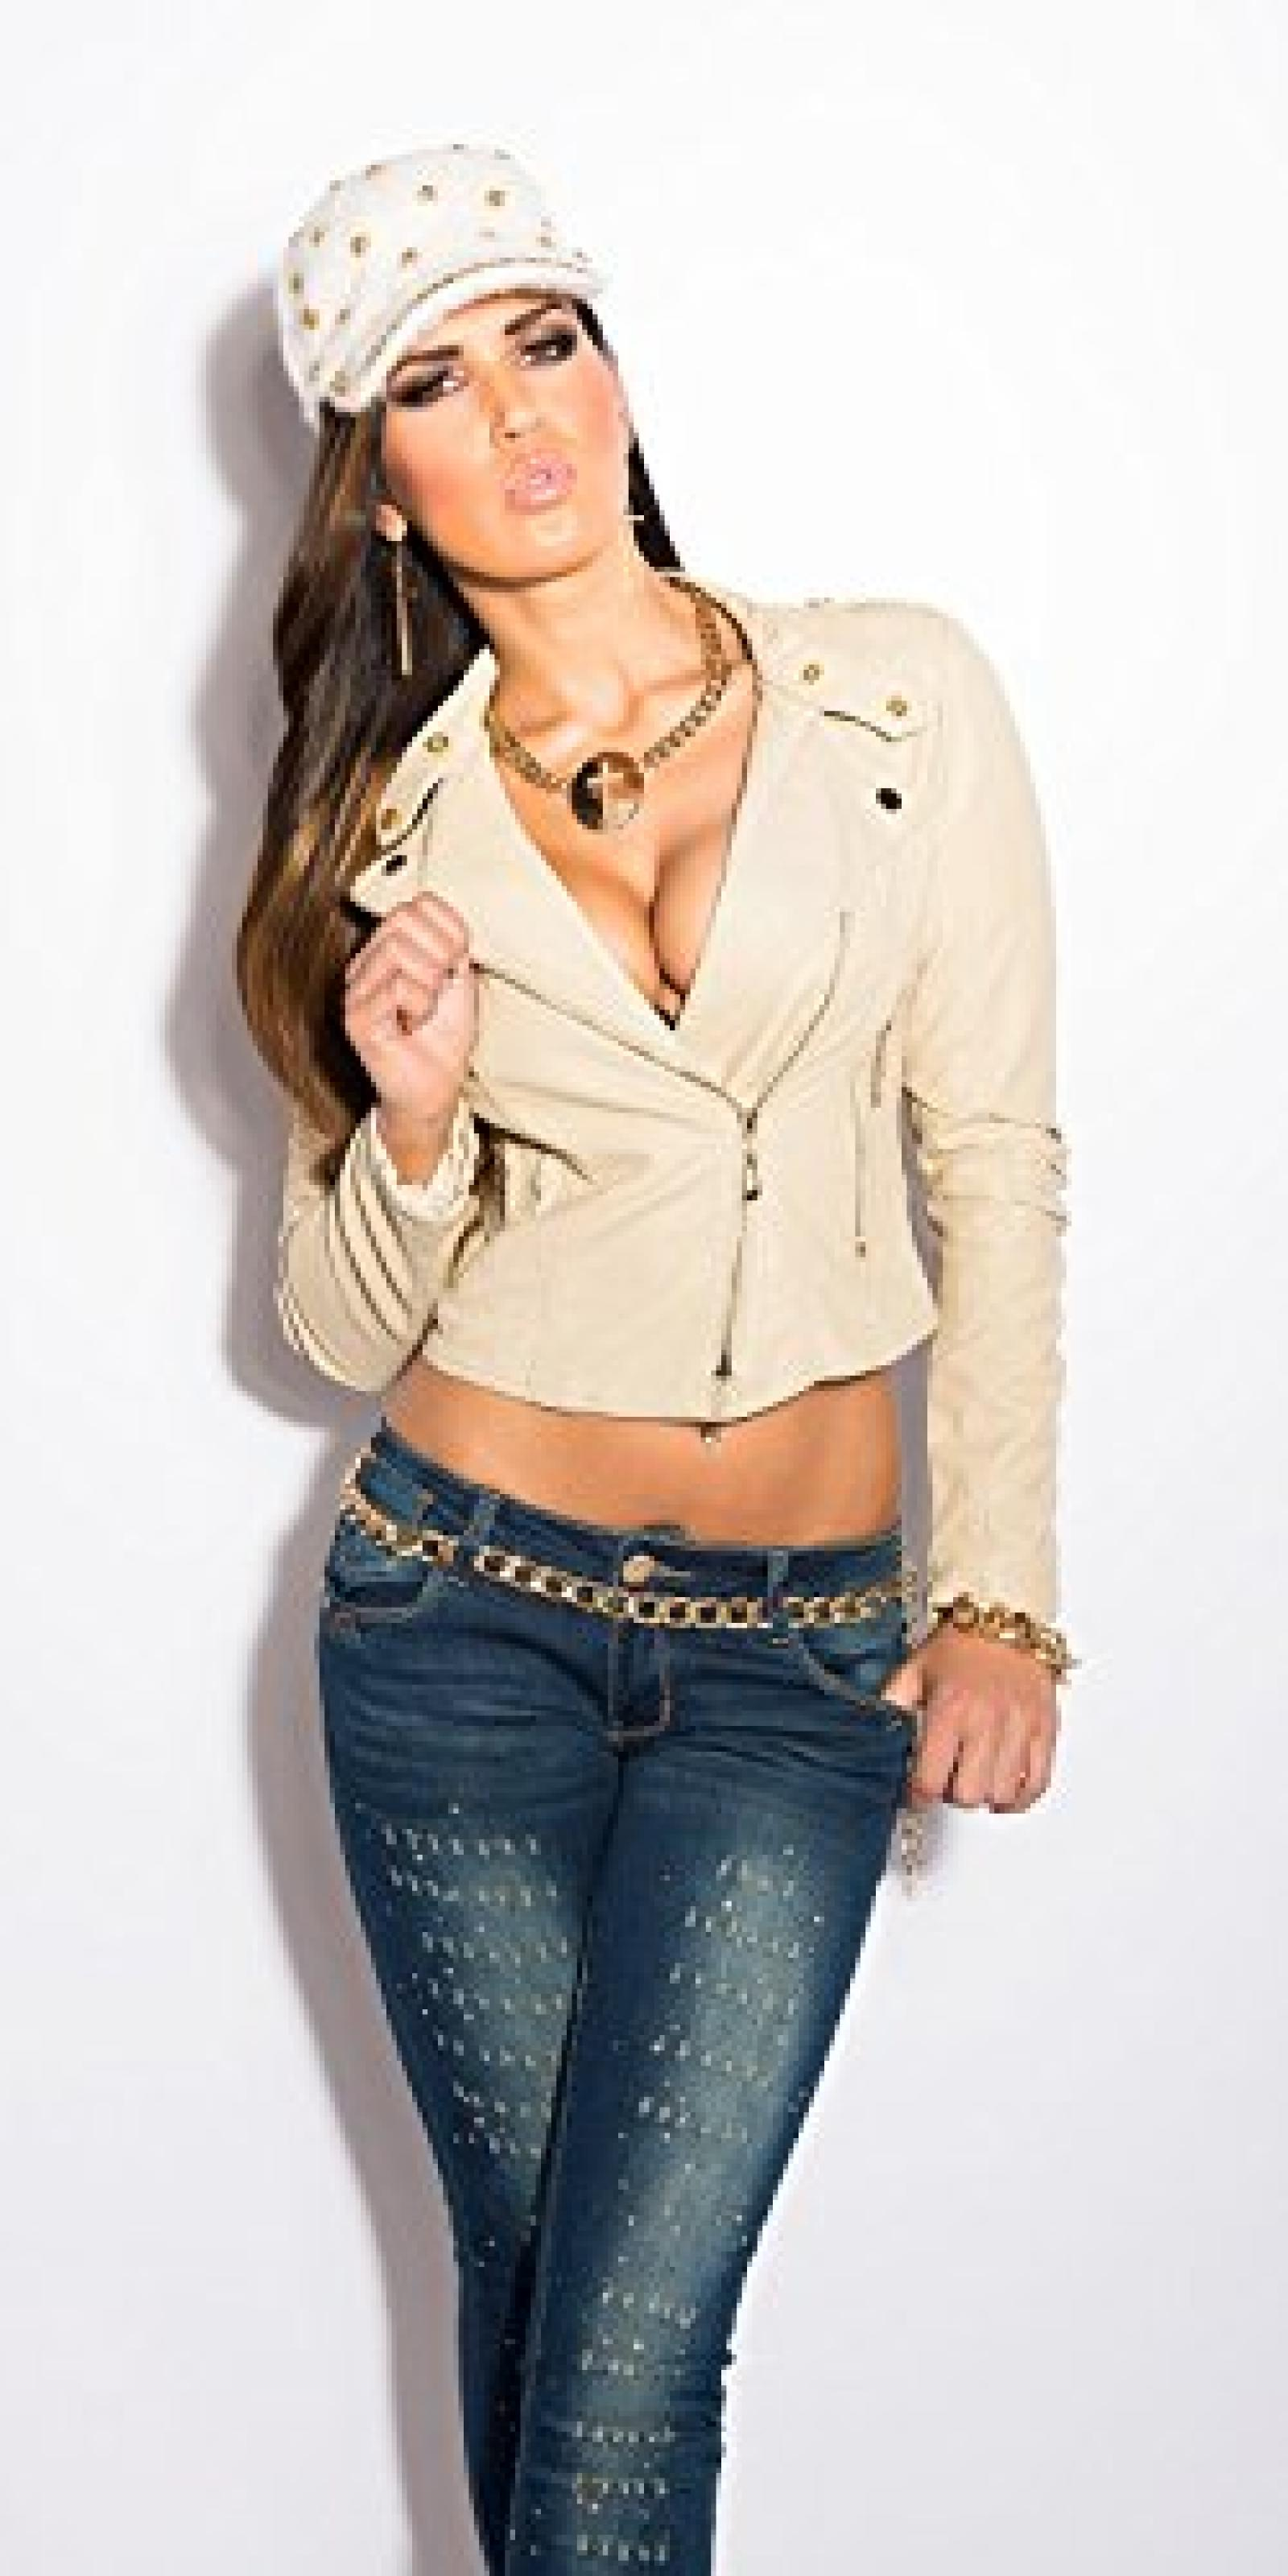 Sexy bikerjacket in leatherlook Koucla by In-Stylefashion SKU 0000LM161608 / Color: BEIGE, Size: XL